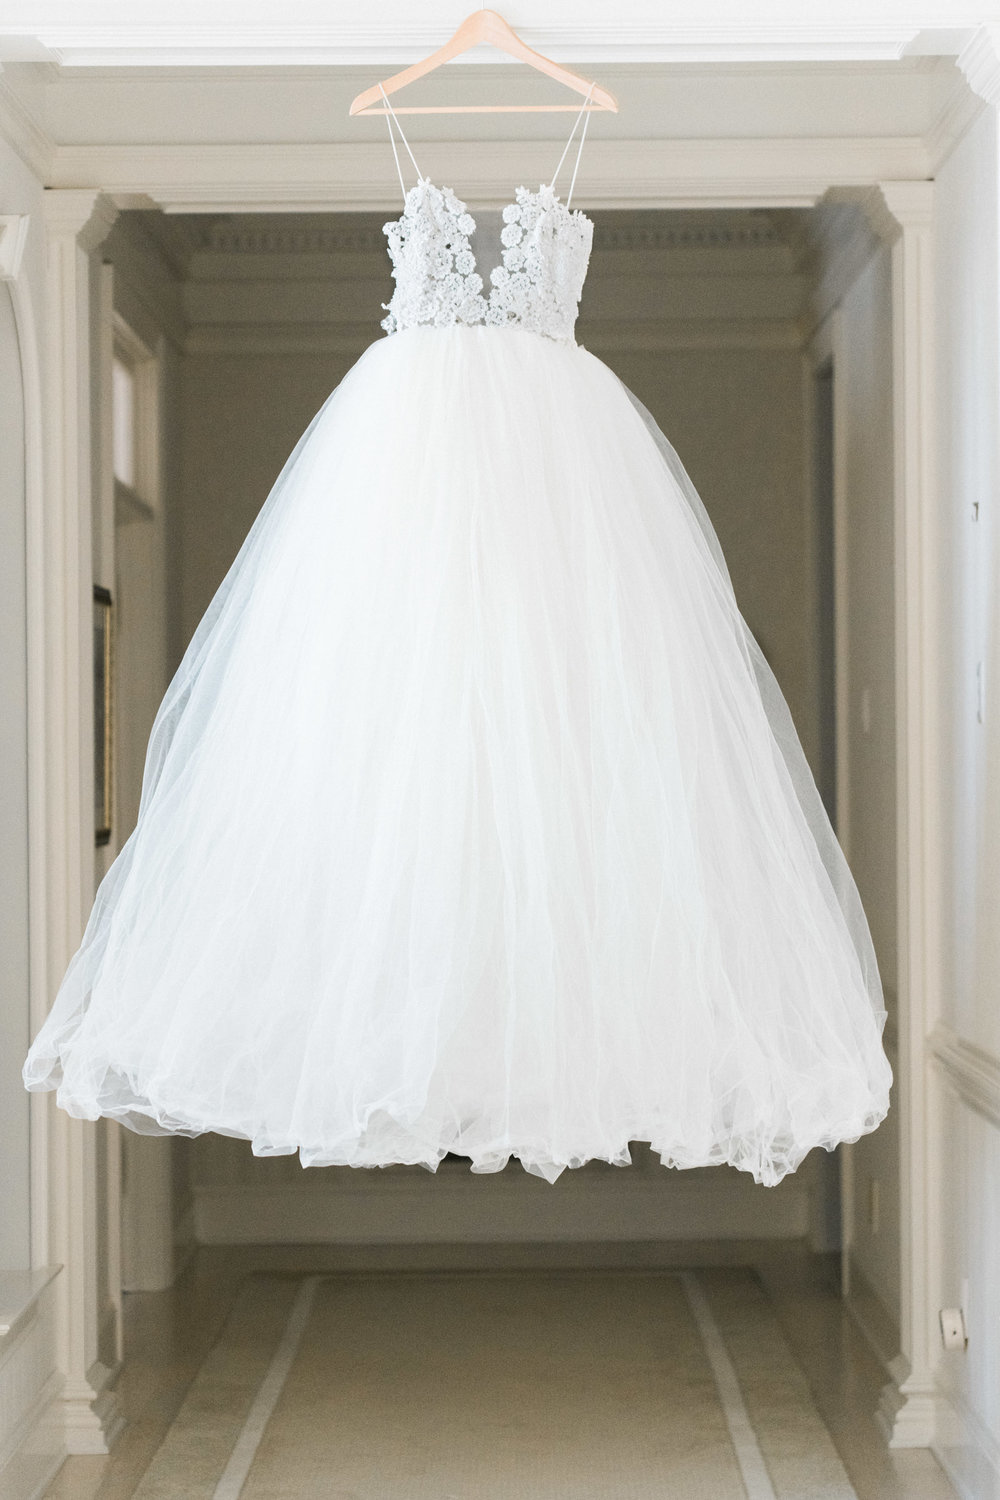 Low Back Wedding Dress - Pennsylvania Private Estate Wedding